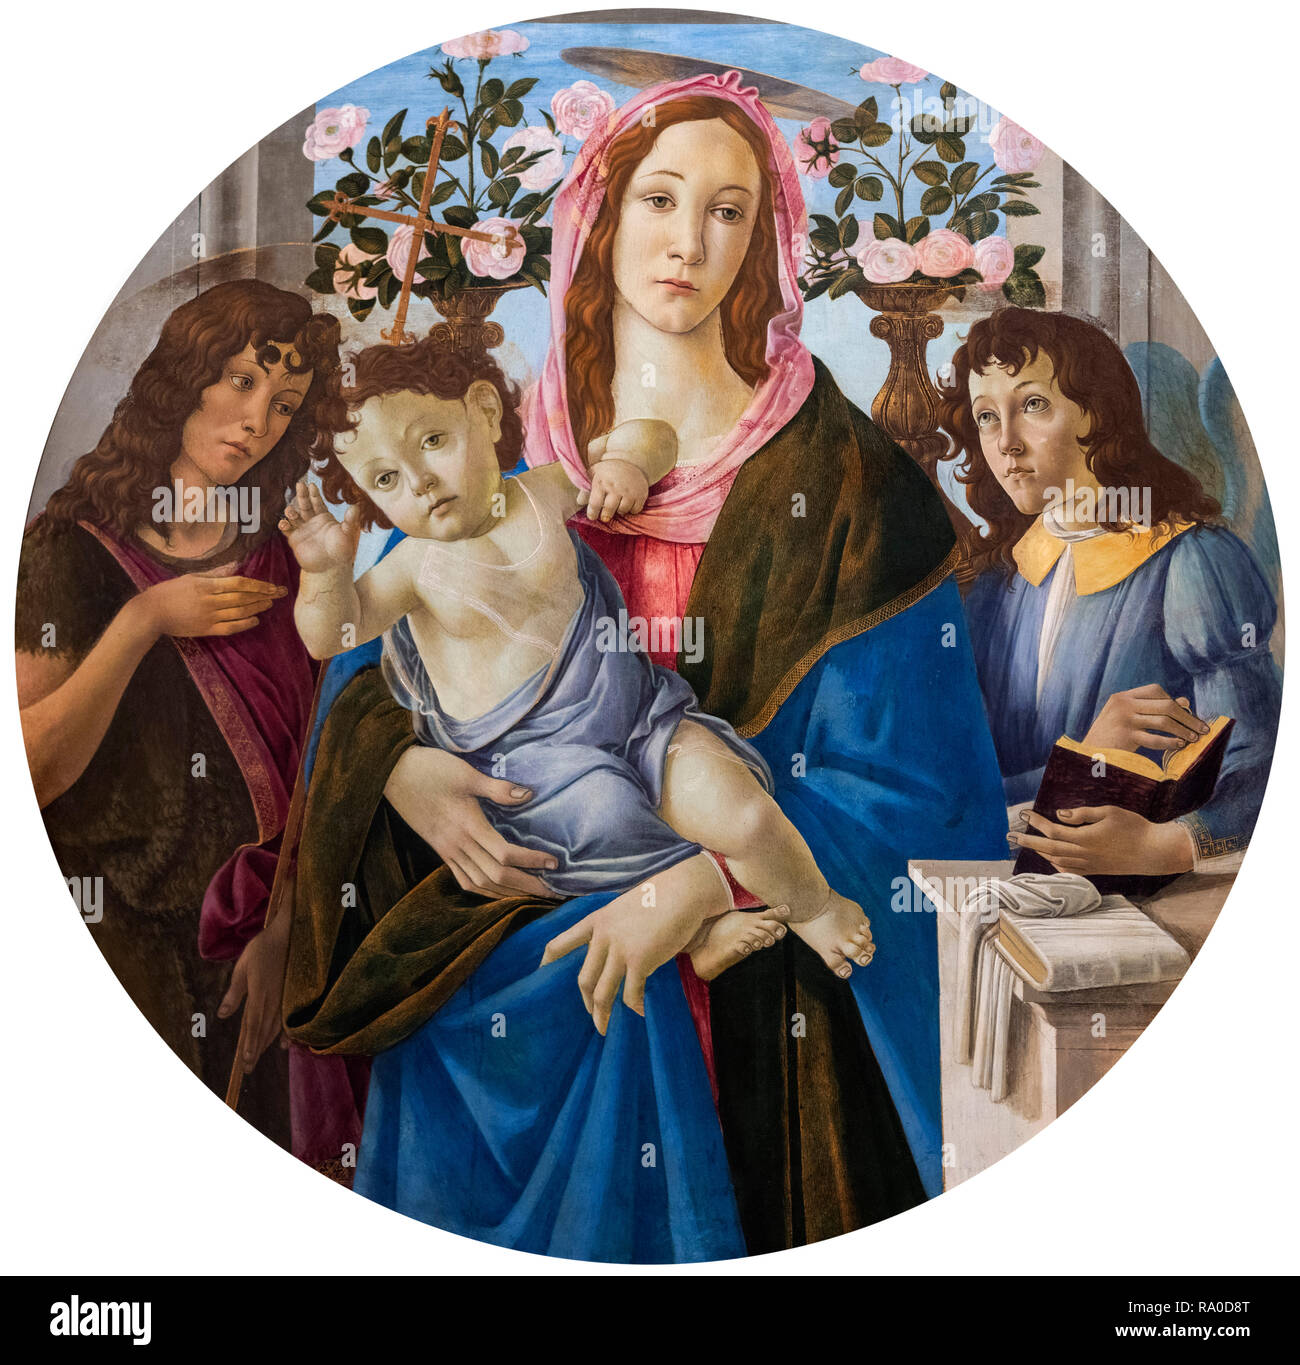 Virgin and Child with Saint John the Baptist and Angel by Sandro Botticelli (Alessandro di Mariano di Vanni Filipepi, c.1445-1510), tempera on wood, c.1470-1510 - Stock Image